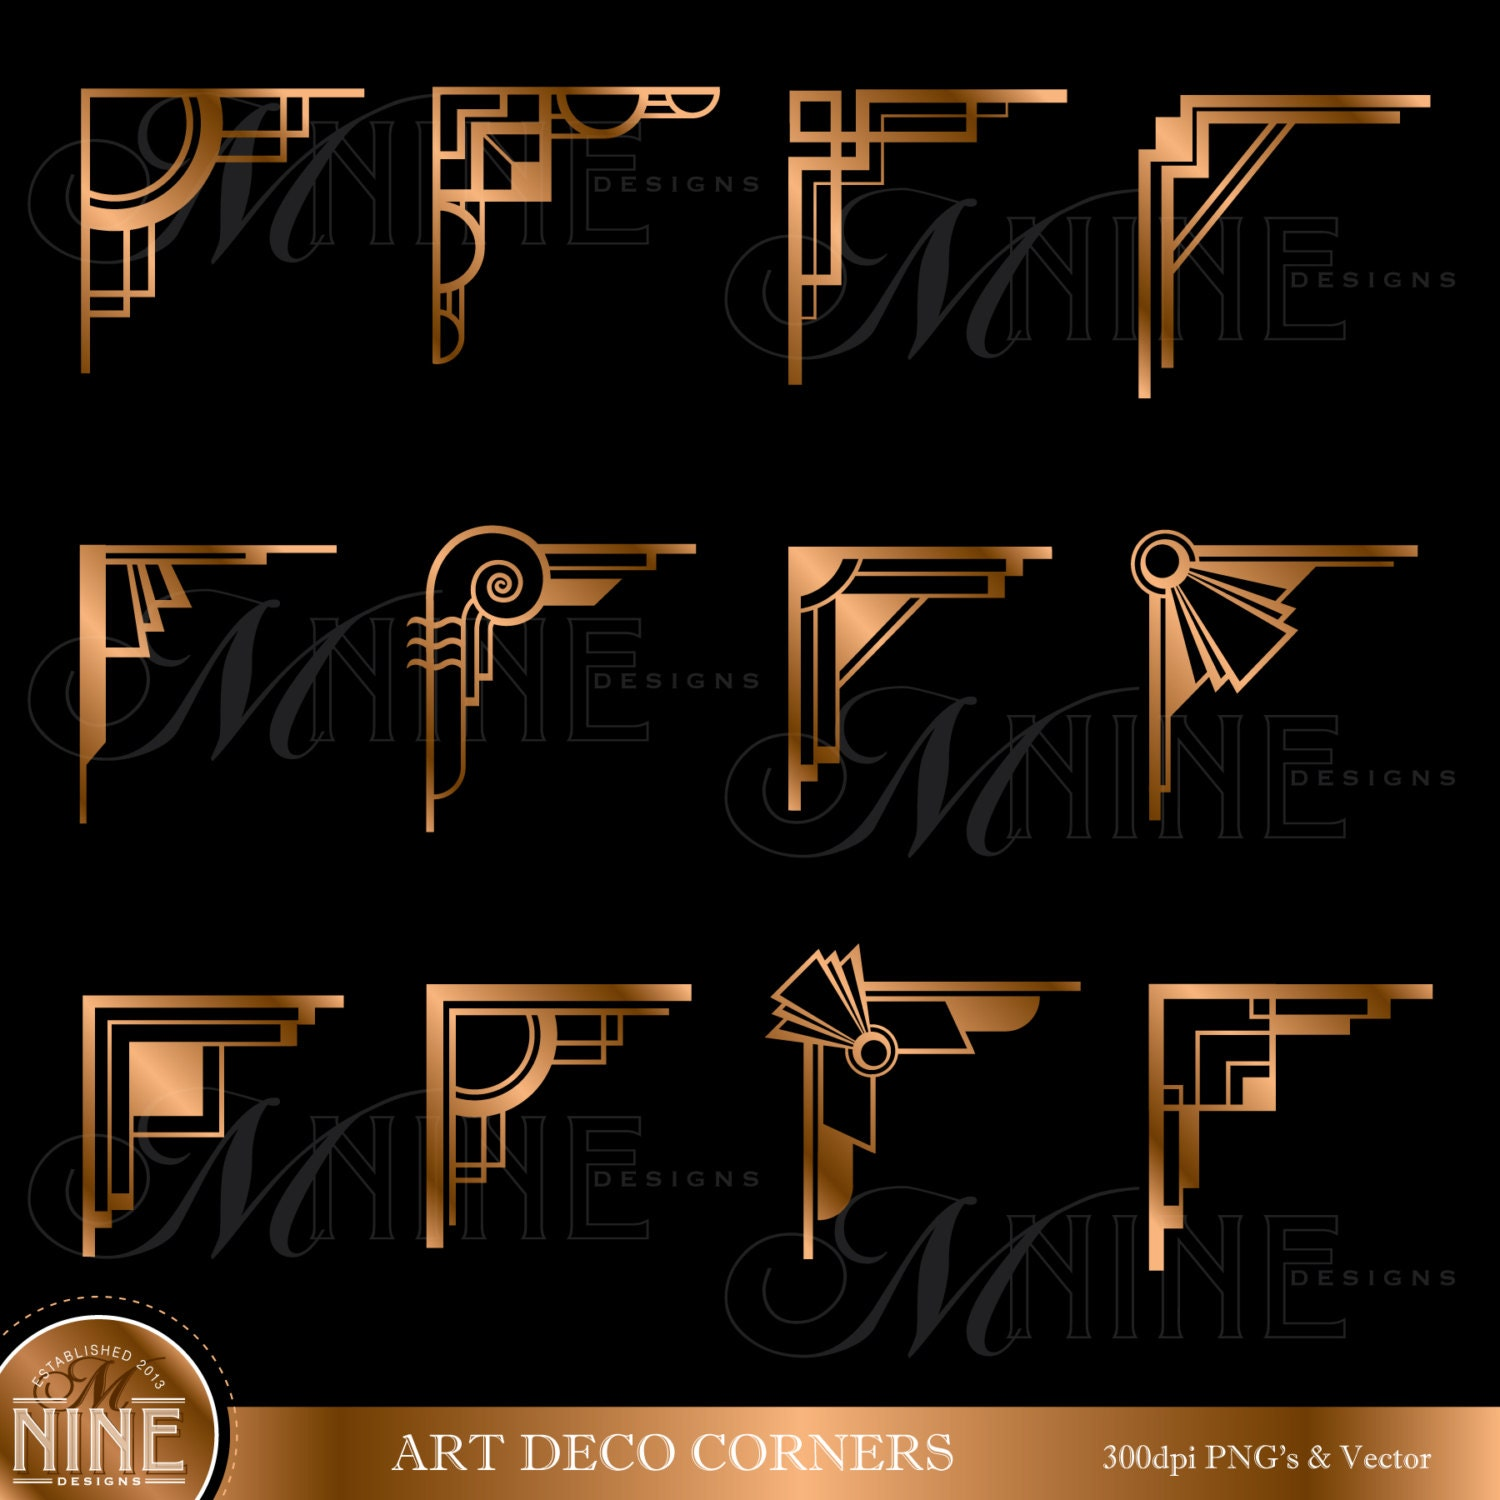 Bronze art deco corners clipart digital clip art instant for Deco 5 elements